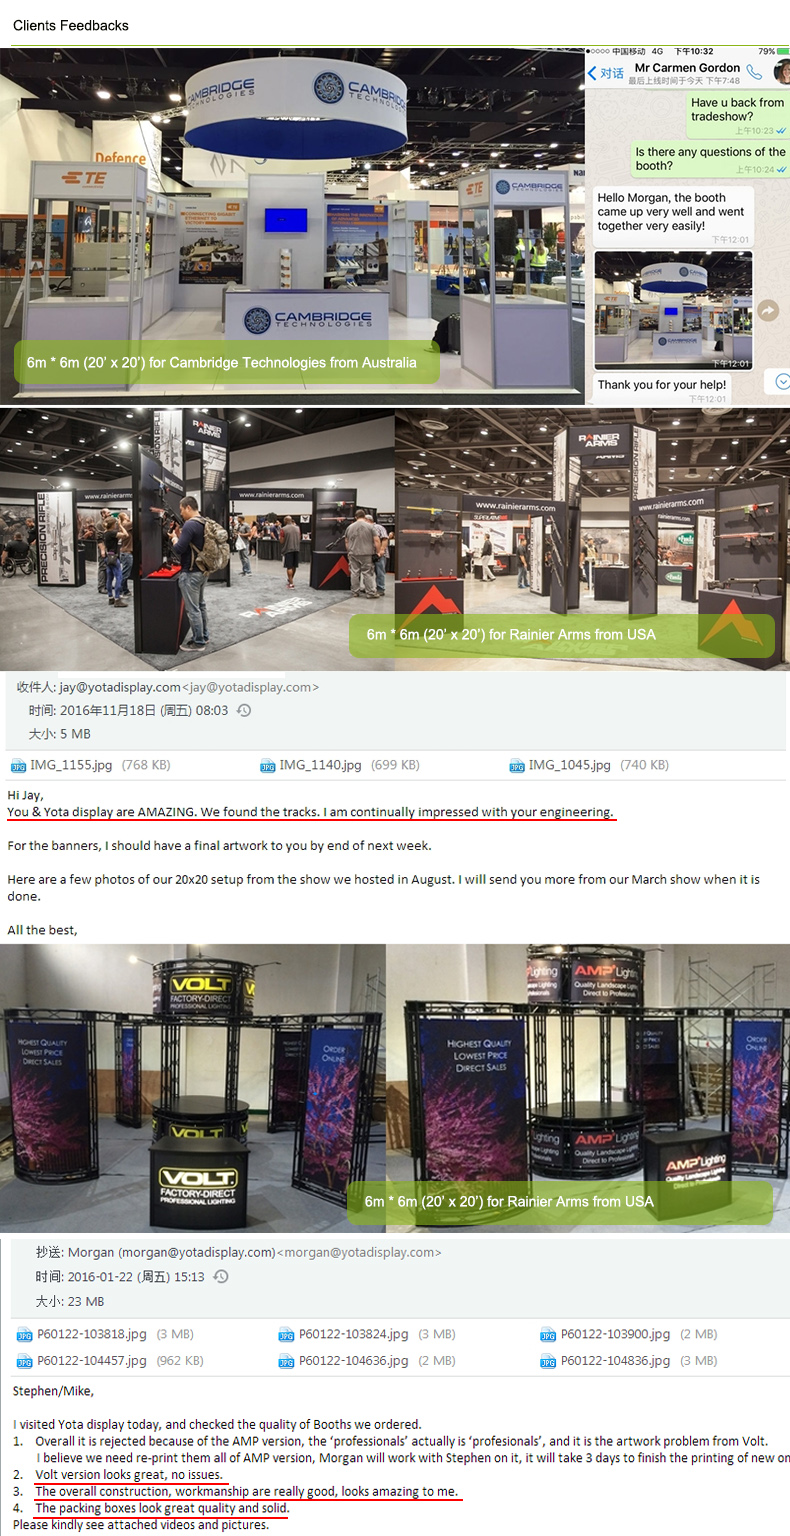 Exhibition Stand Designers Amp Builders : Yota offer lighting tradeshow exhibitor stands booth rental